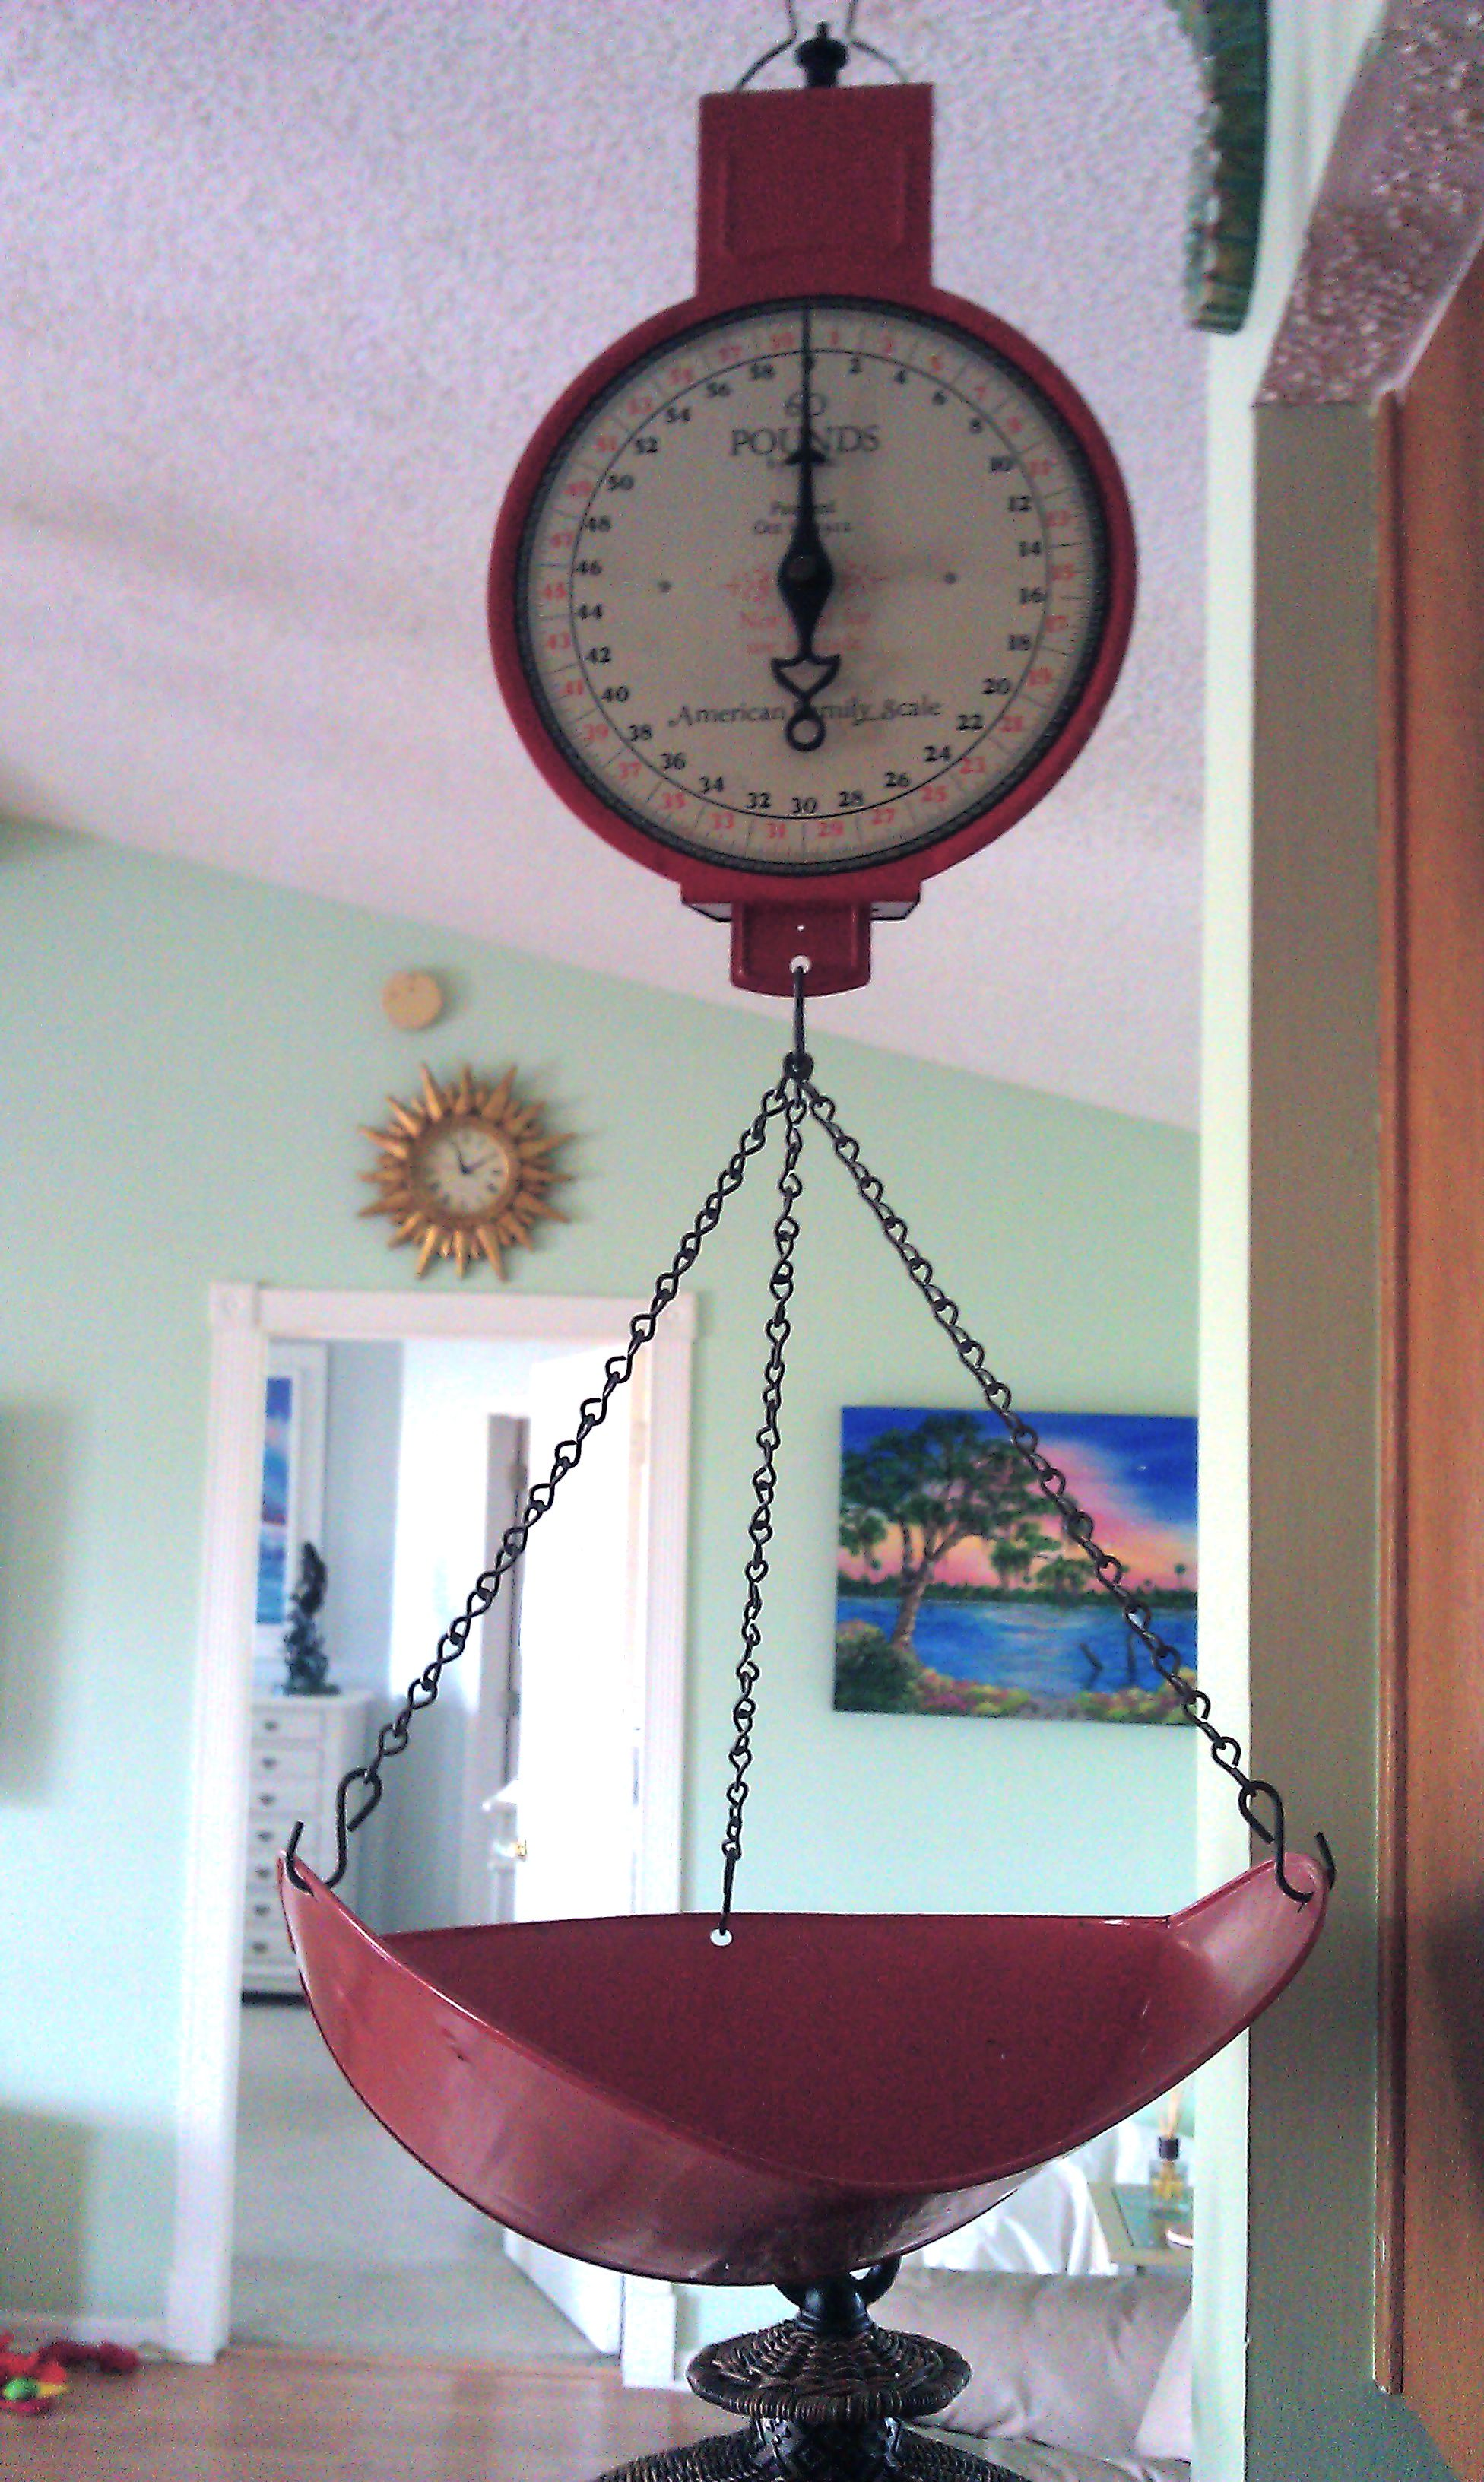 Old Kitchen Scale | I Love My Old Fashion Hanging Scale In The Kitchen Home Decor In